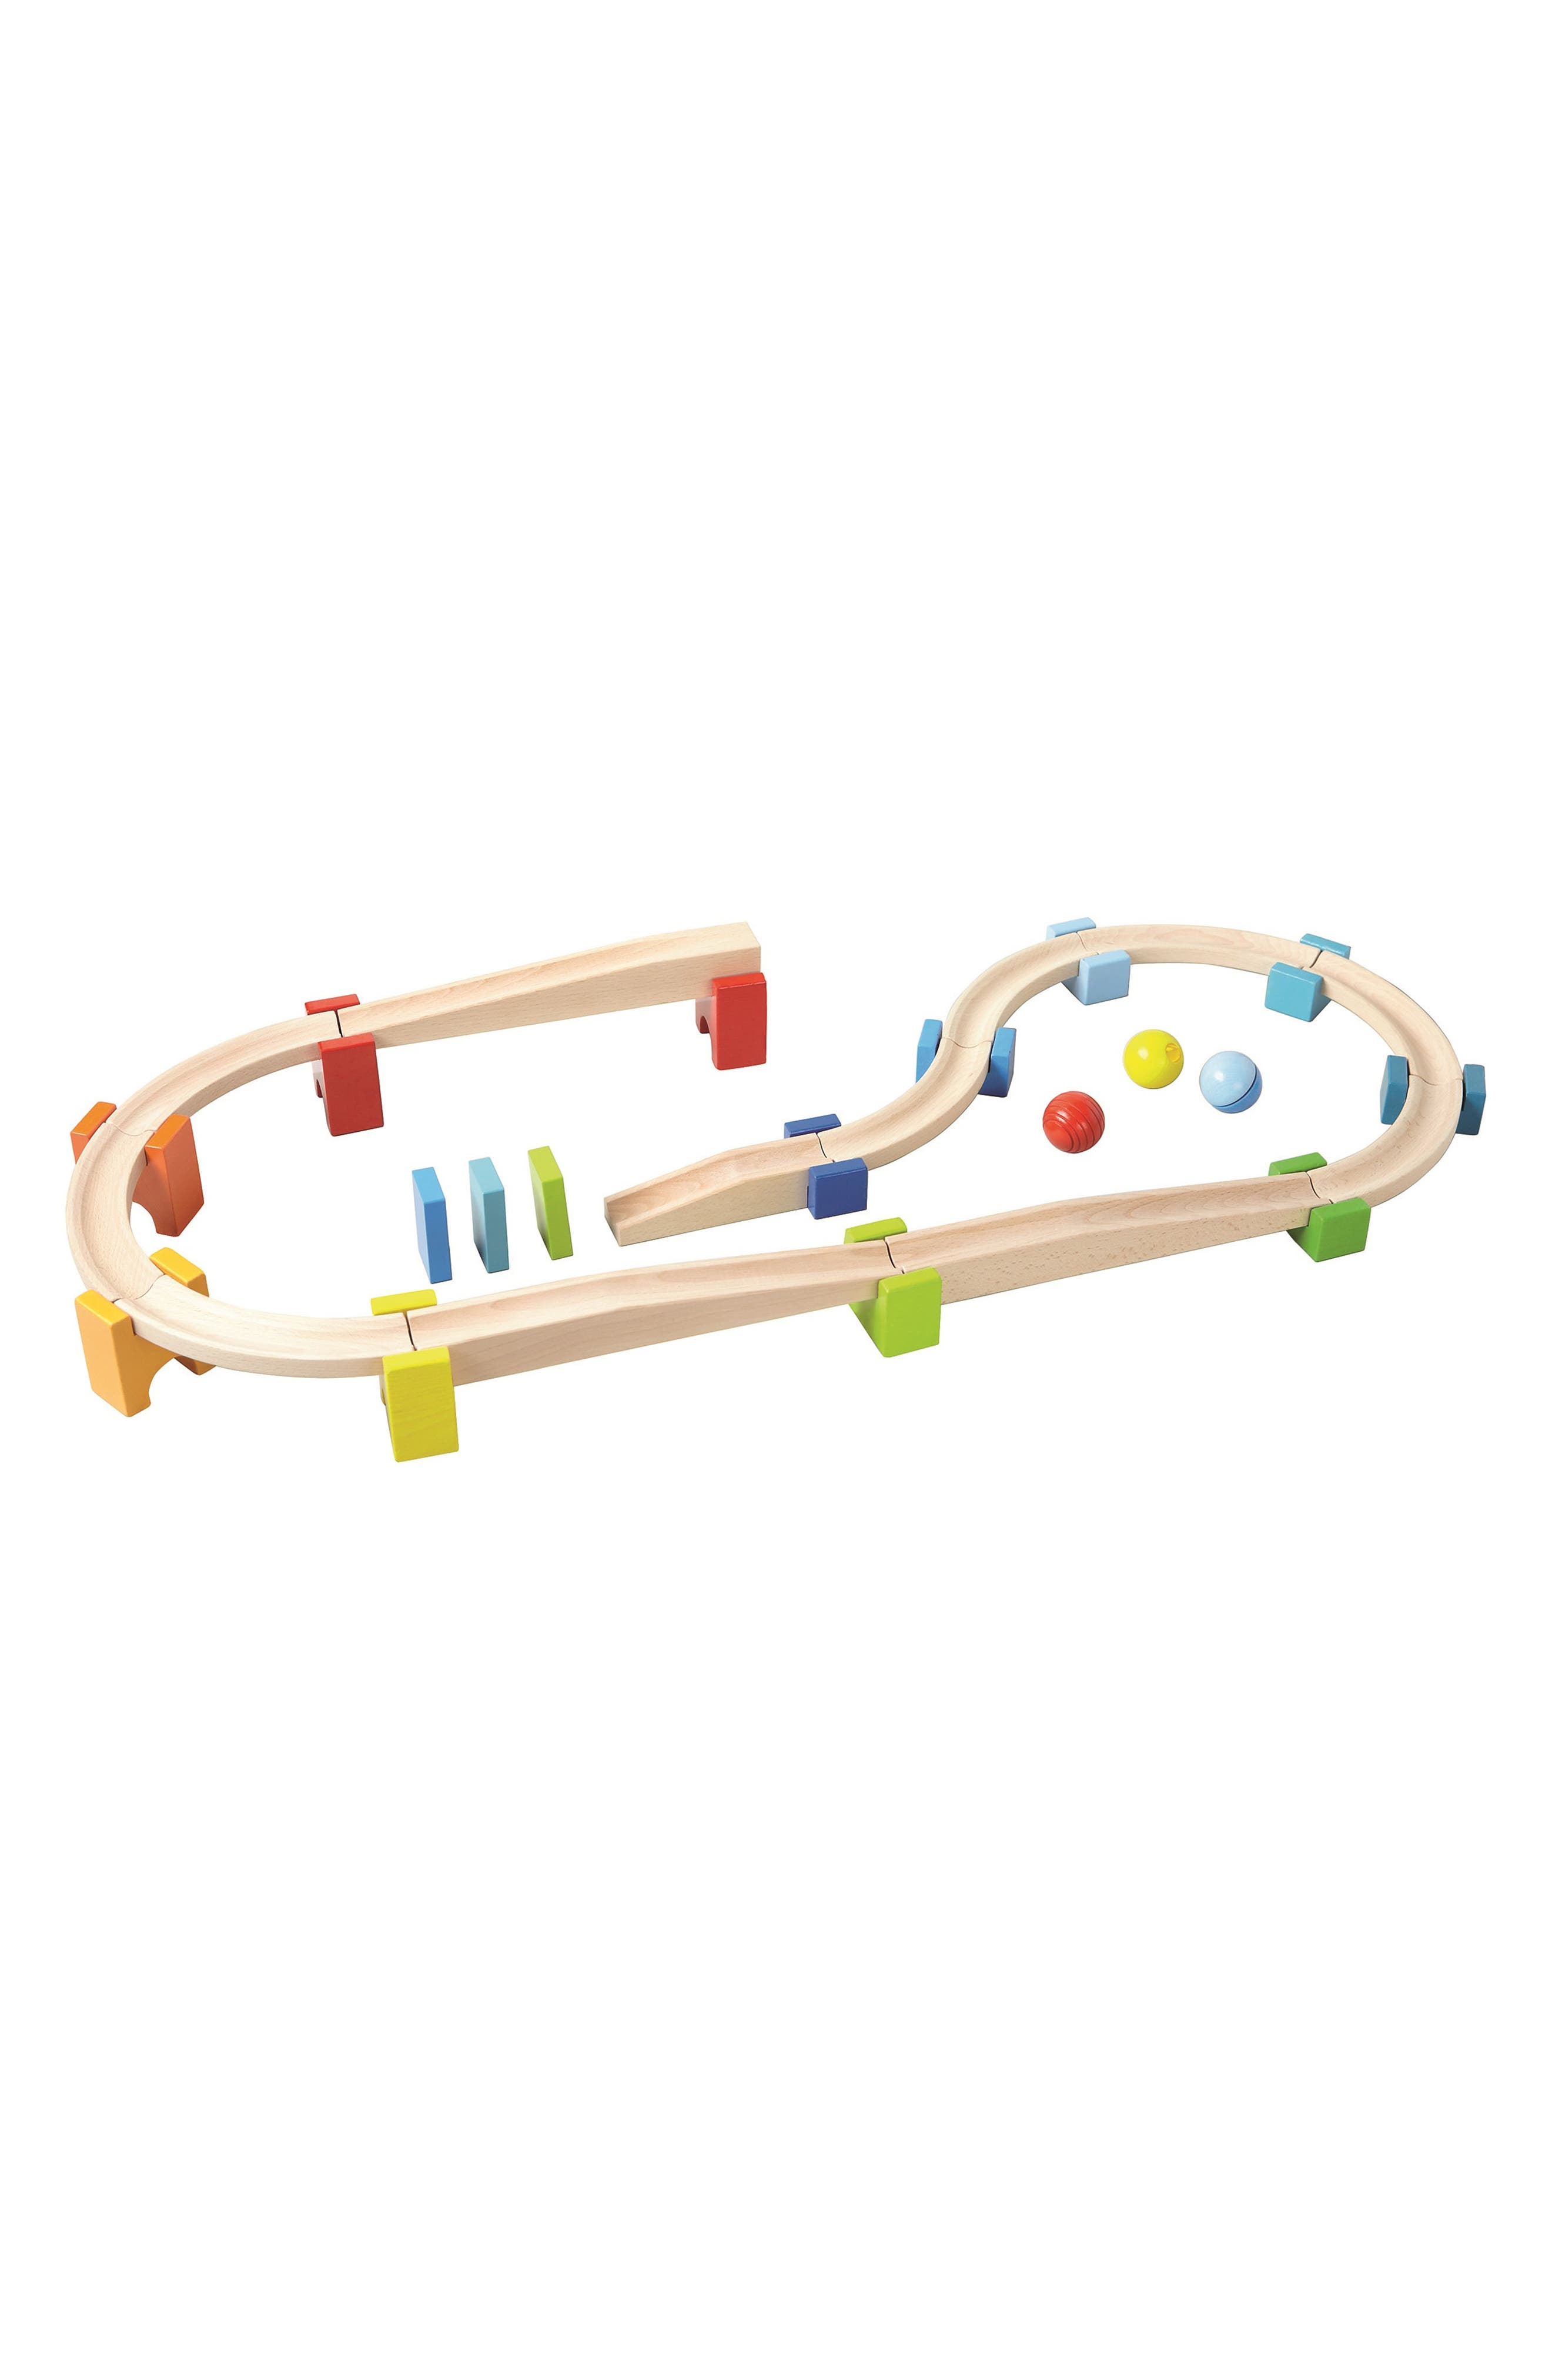 My First Ball Track - 30-Piece Large Basic Pack Construction Set,                             Main thumbnail 1, color,                             Brown